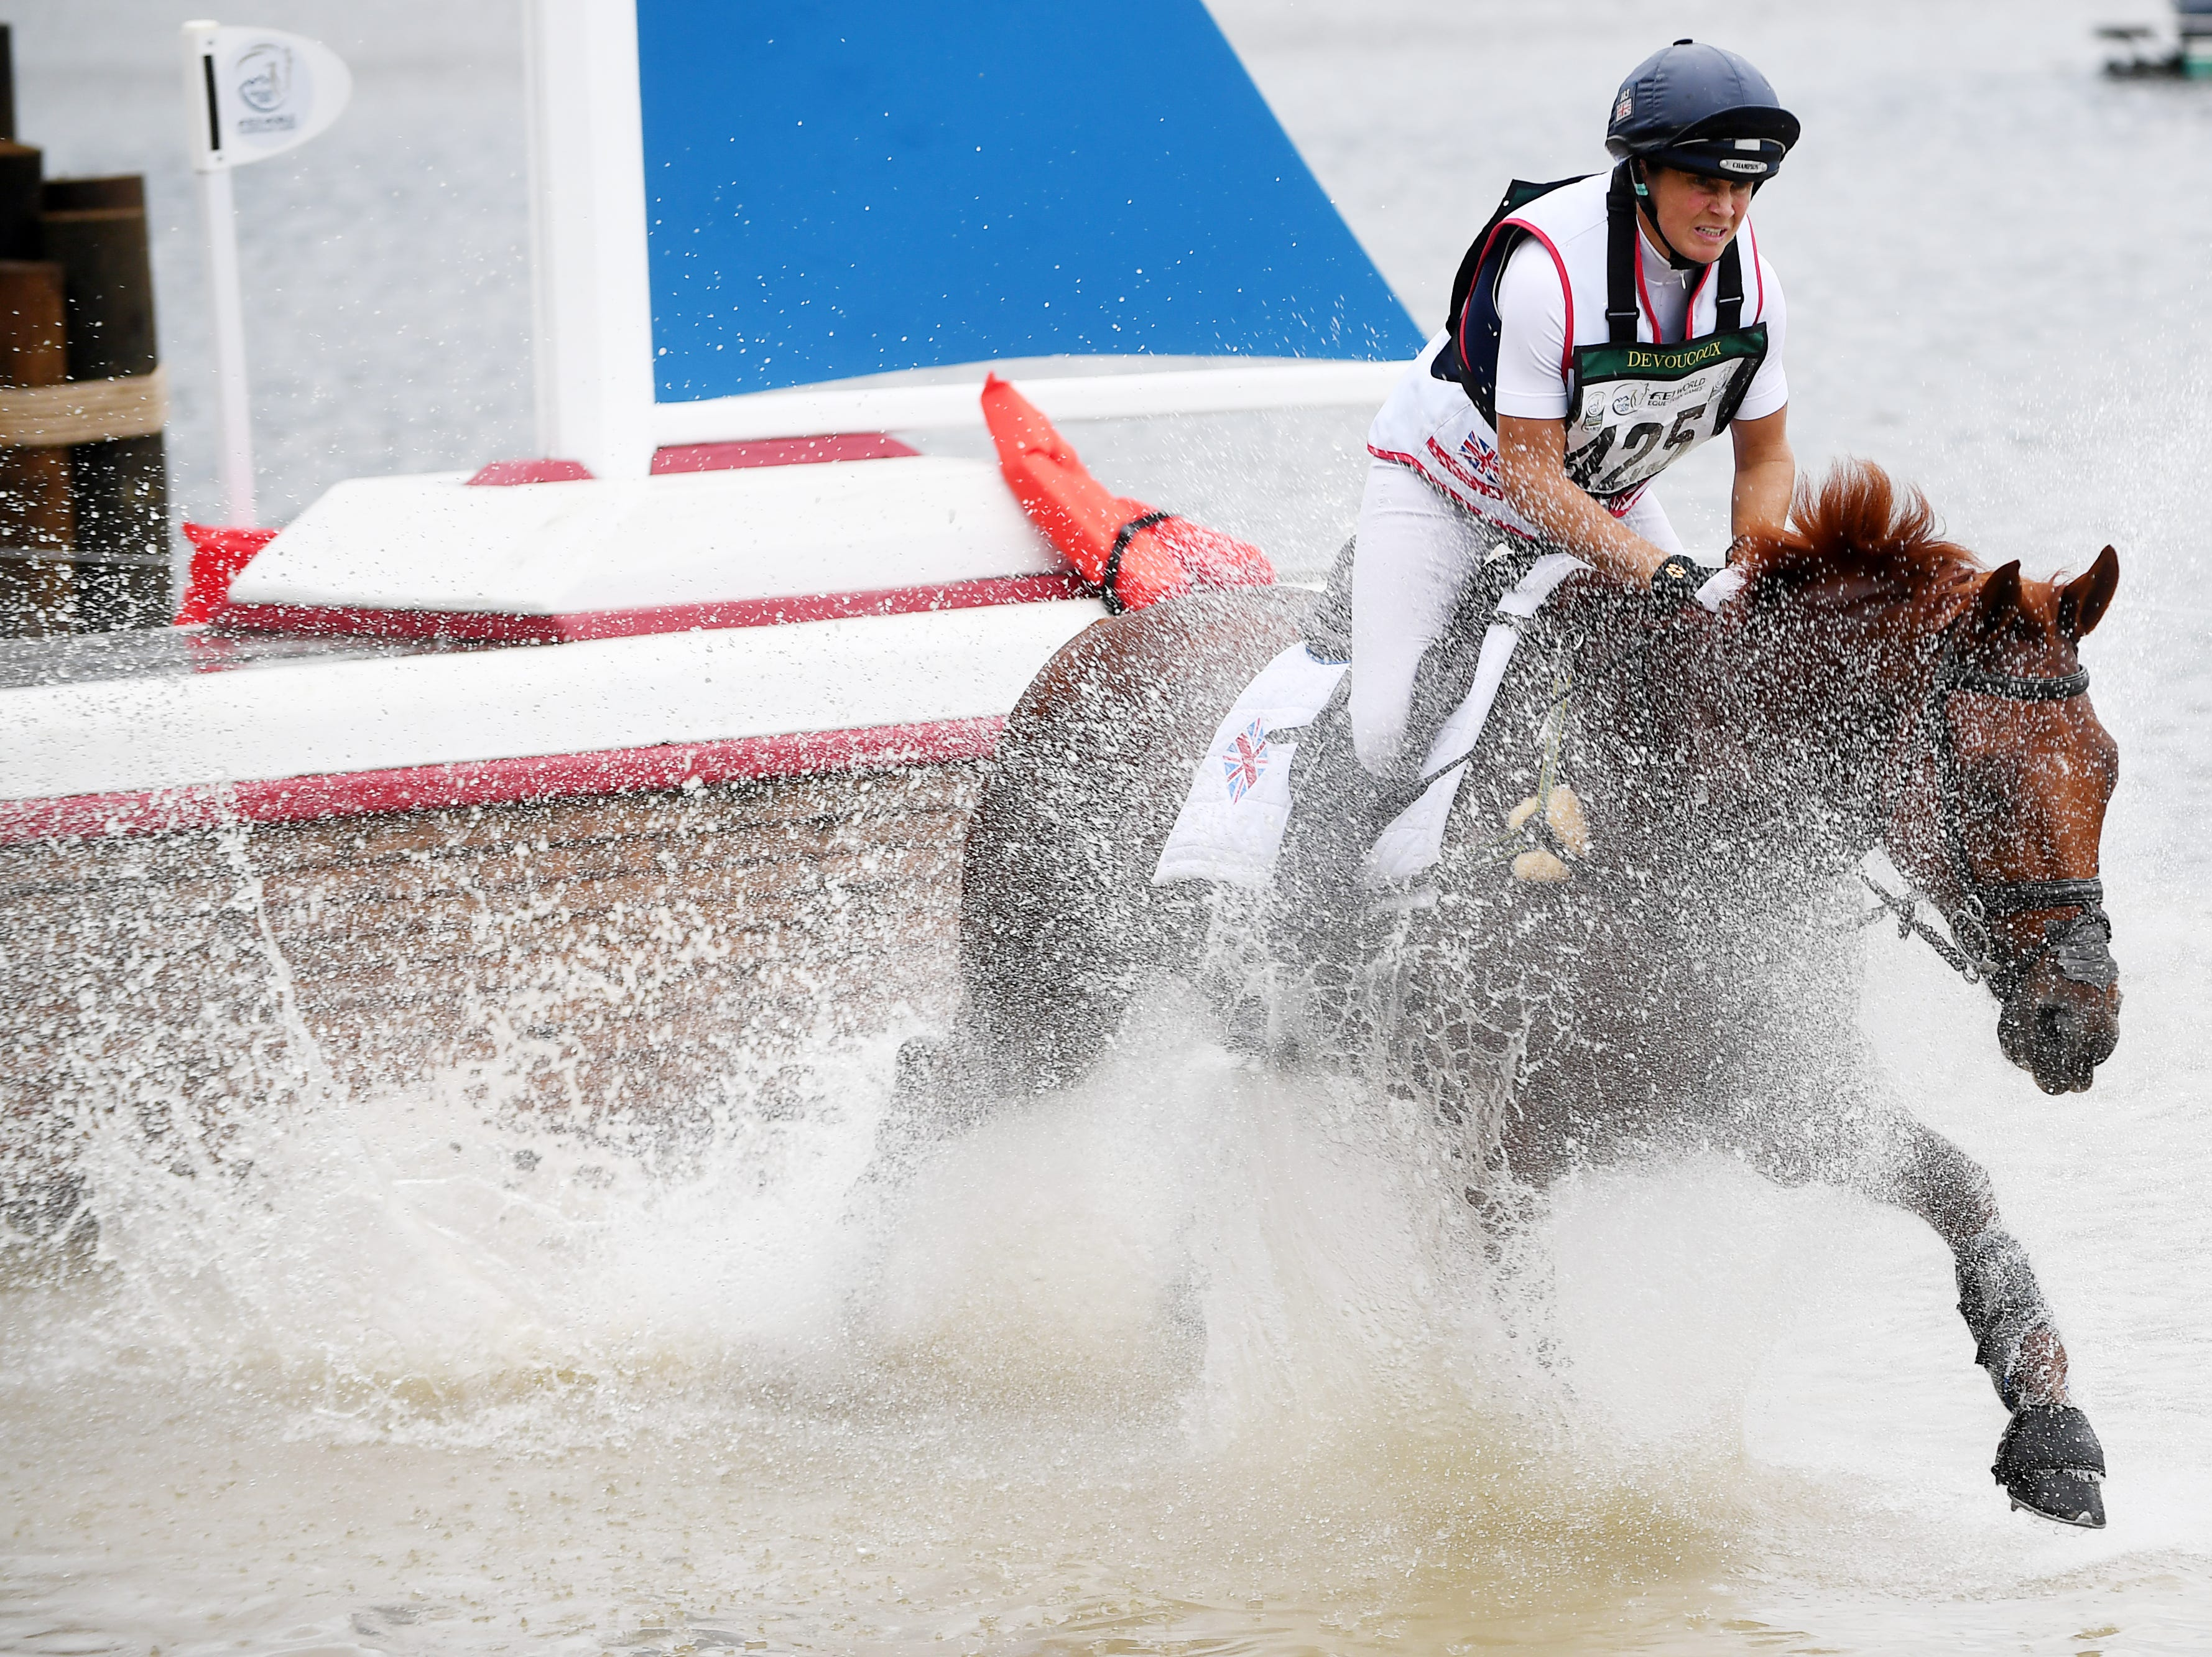 Scenes from the cross country event on day four of the World Equestrian Games in Tryon Sept. 15, 2018.